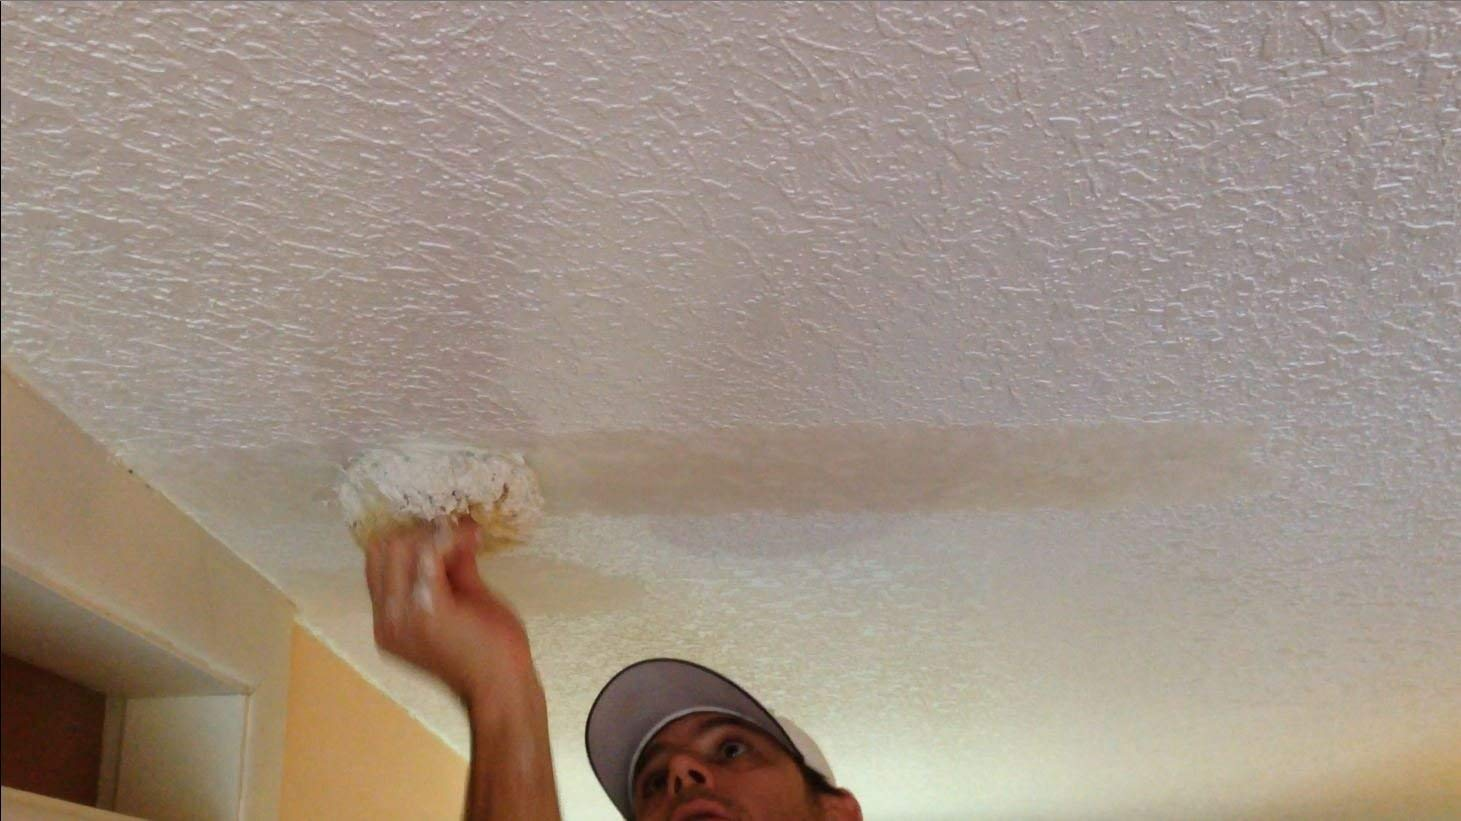 Texas Popcorn Removal Service Pros-popcorn removal services, residential & commercial popcorn ceiling removal-16-We offer professional popcorn removal services, residential & commercial popcorn ceiling removal, Knockdown Texture, Orange Peel Ceilings, Smooth Ceiling Finish, and Drywall Repair